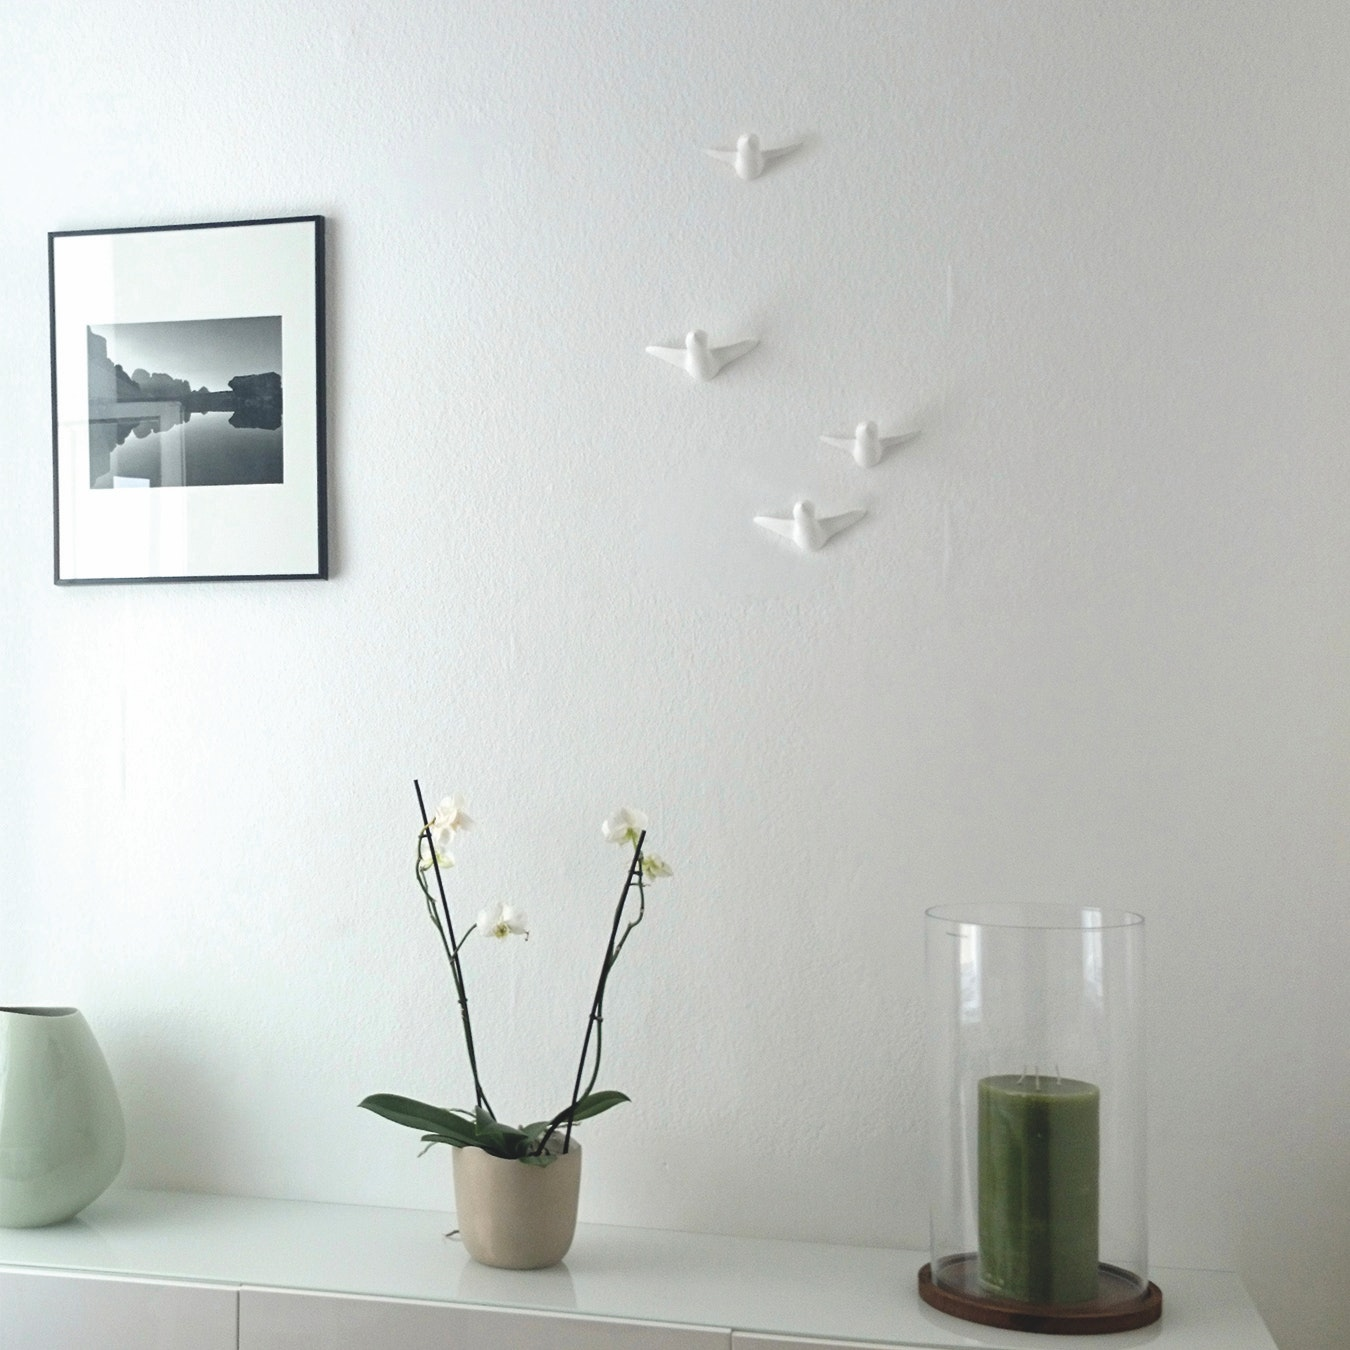 Ceramic Birds Wall Decoration In Small White 4pcs